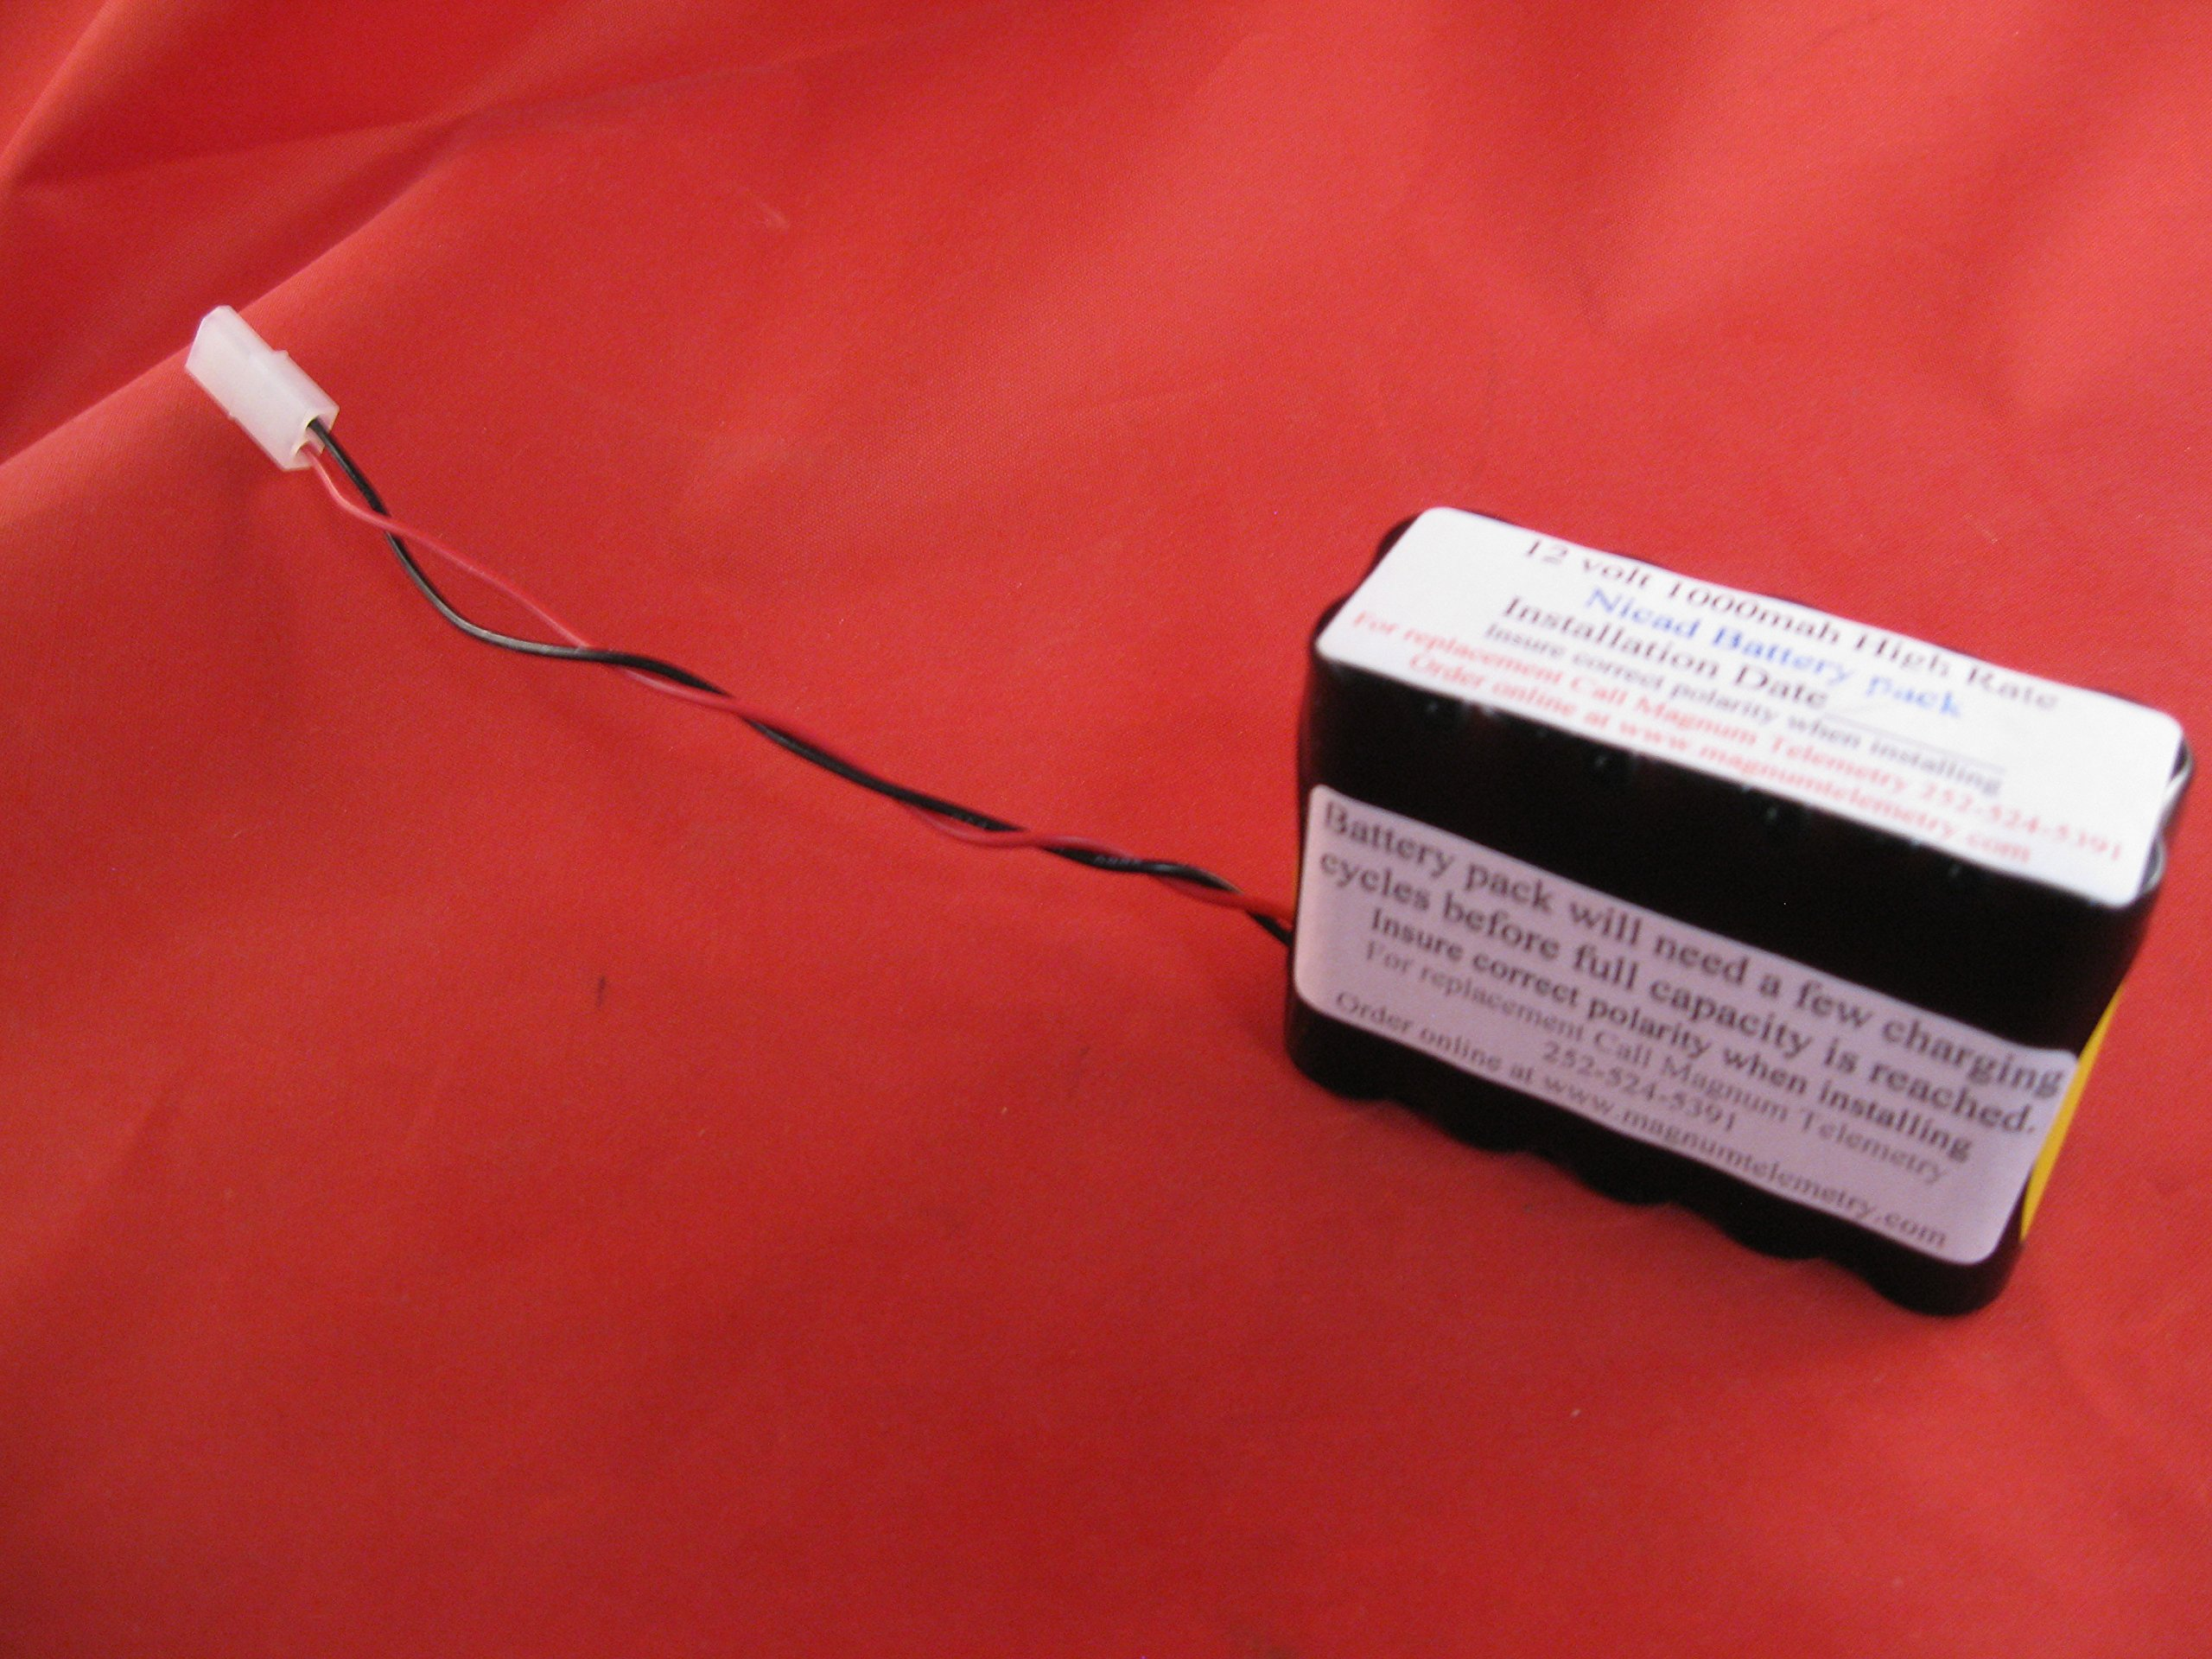 Battery Pack Wildlife Materials TRX10s 10 channel 12 volt 1000mah high rate